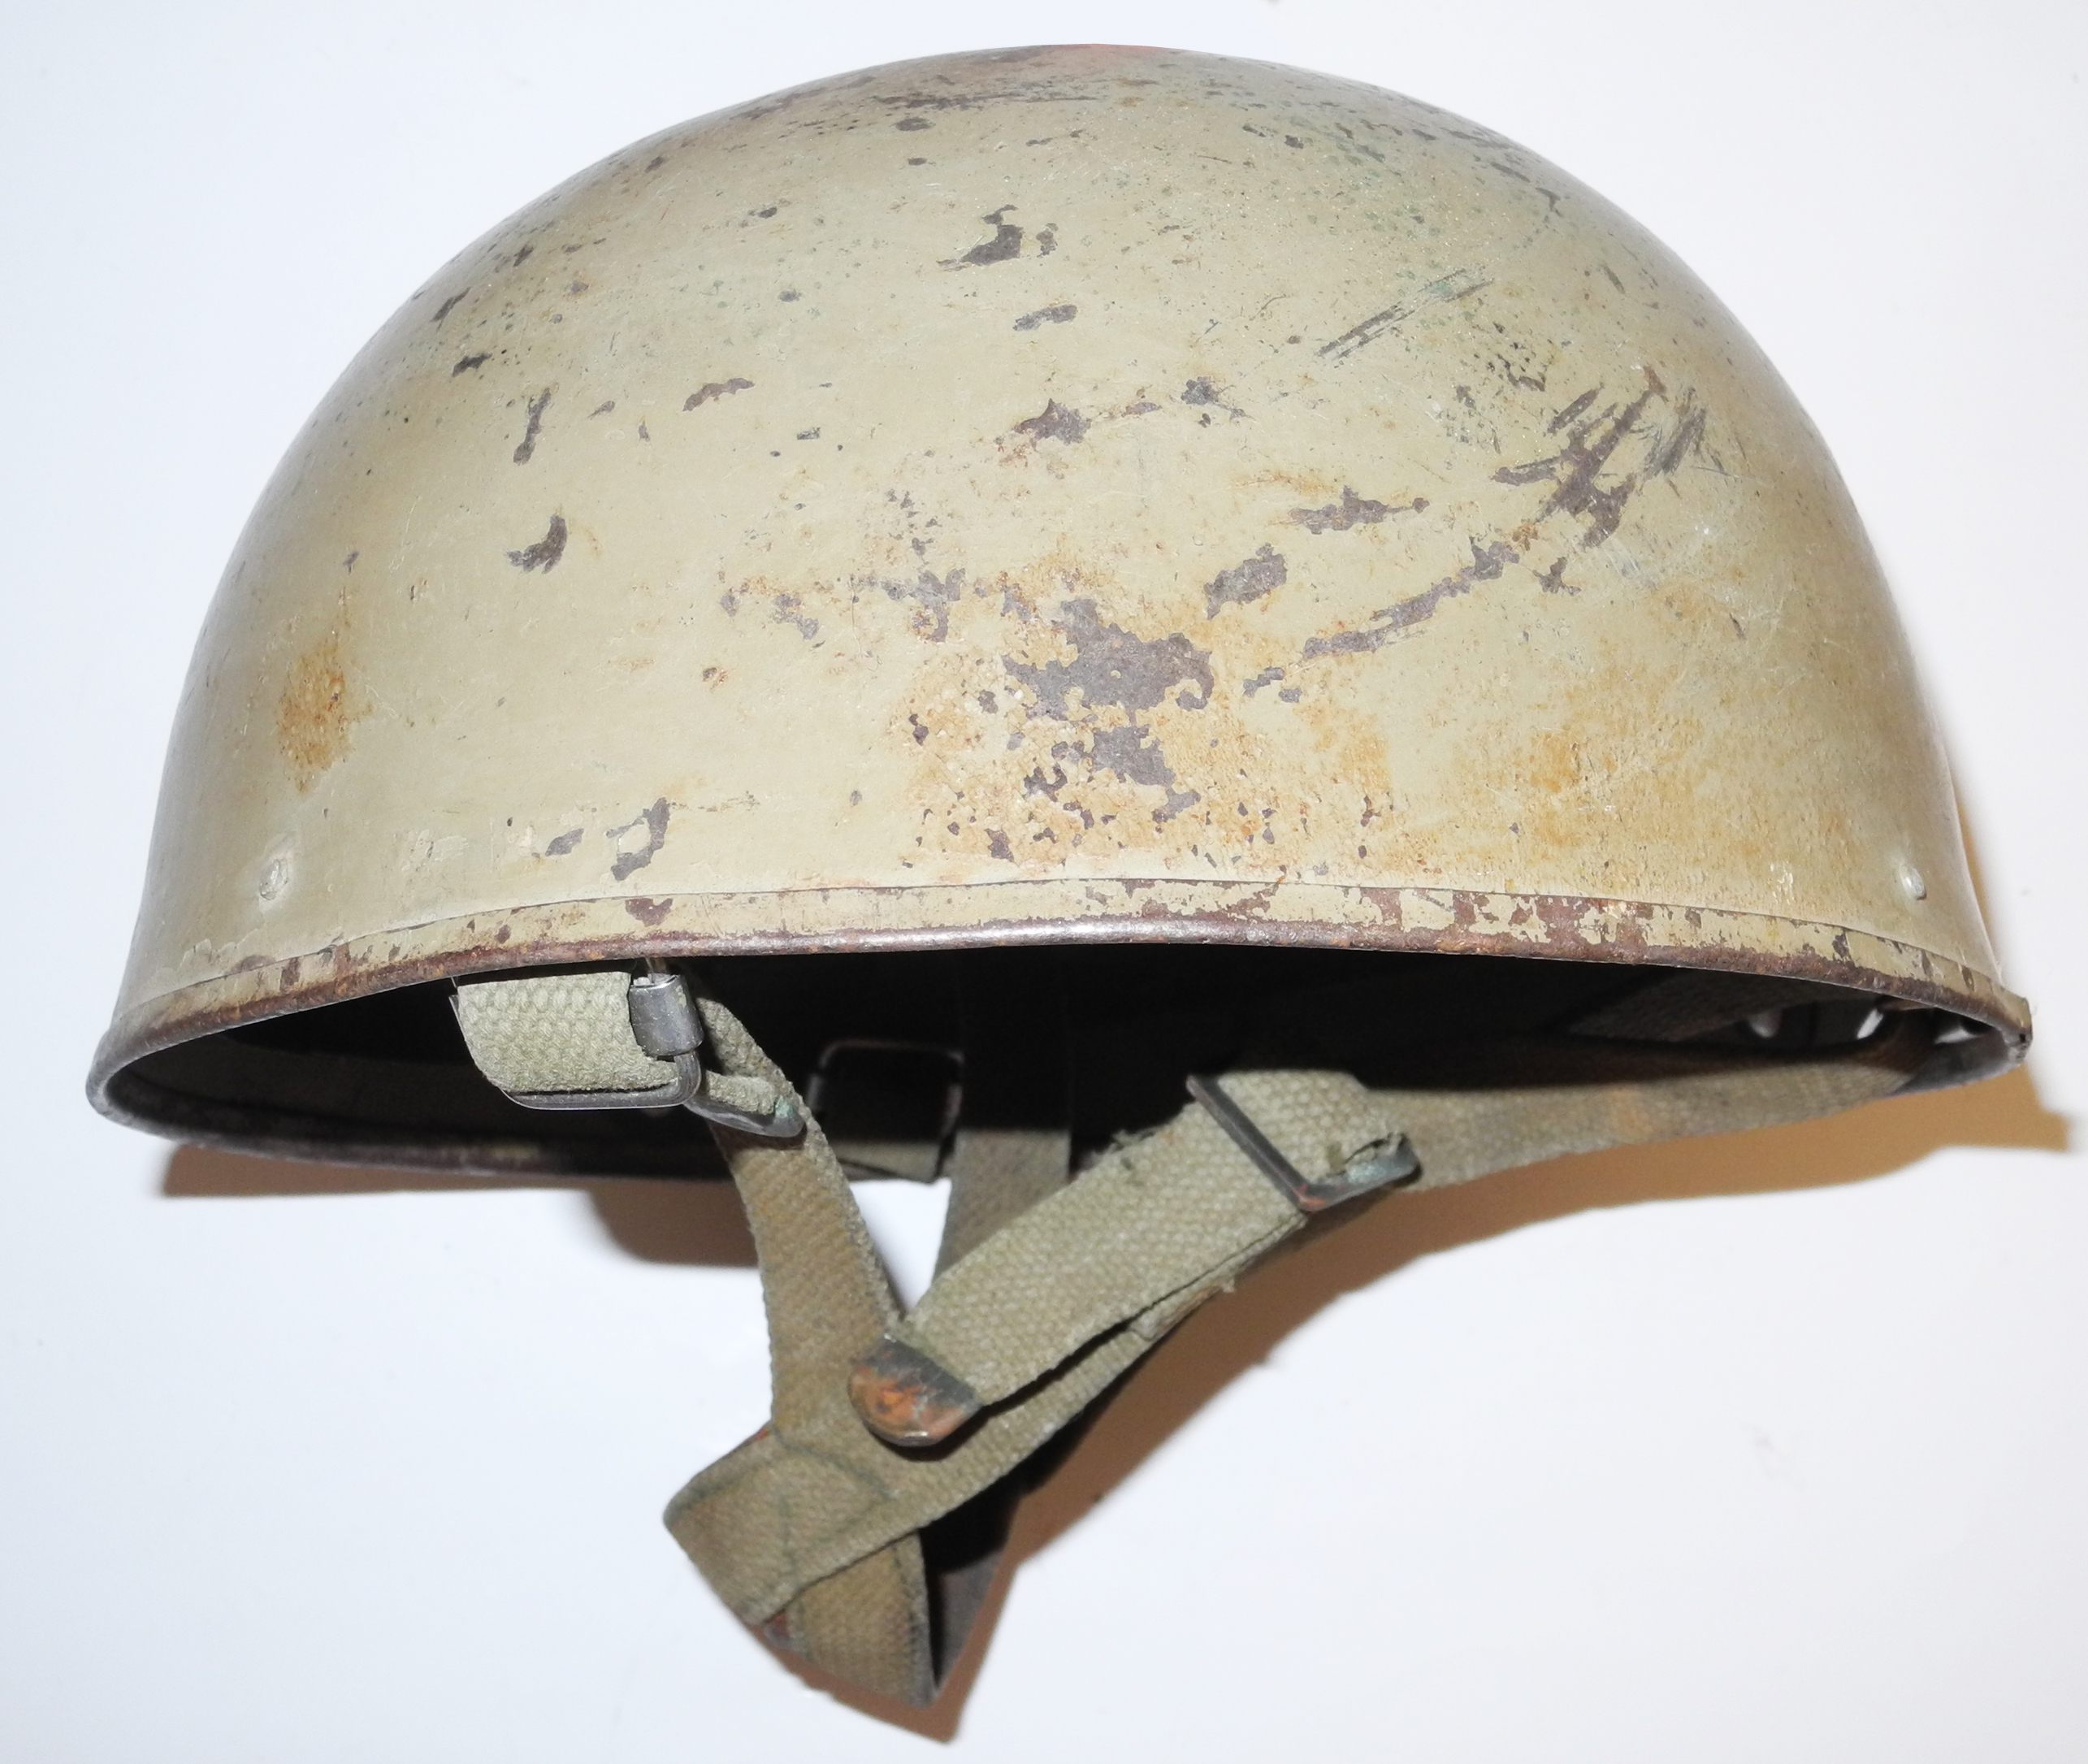 Cold War British/NATO Paratrooper helmet